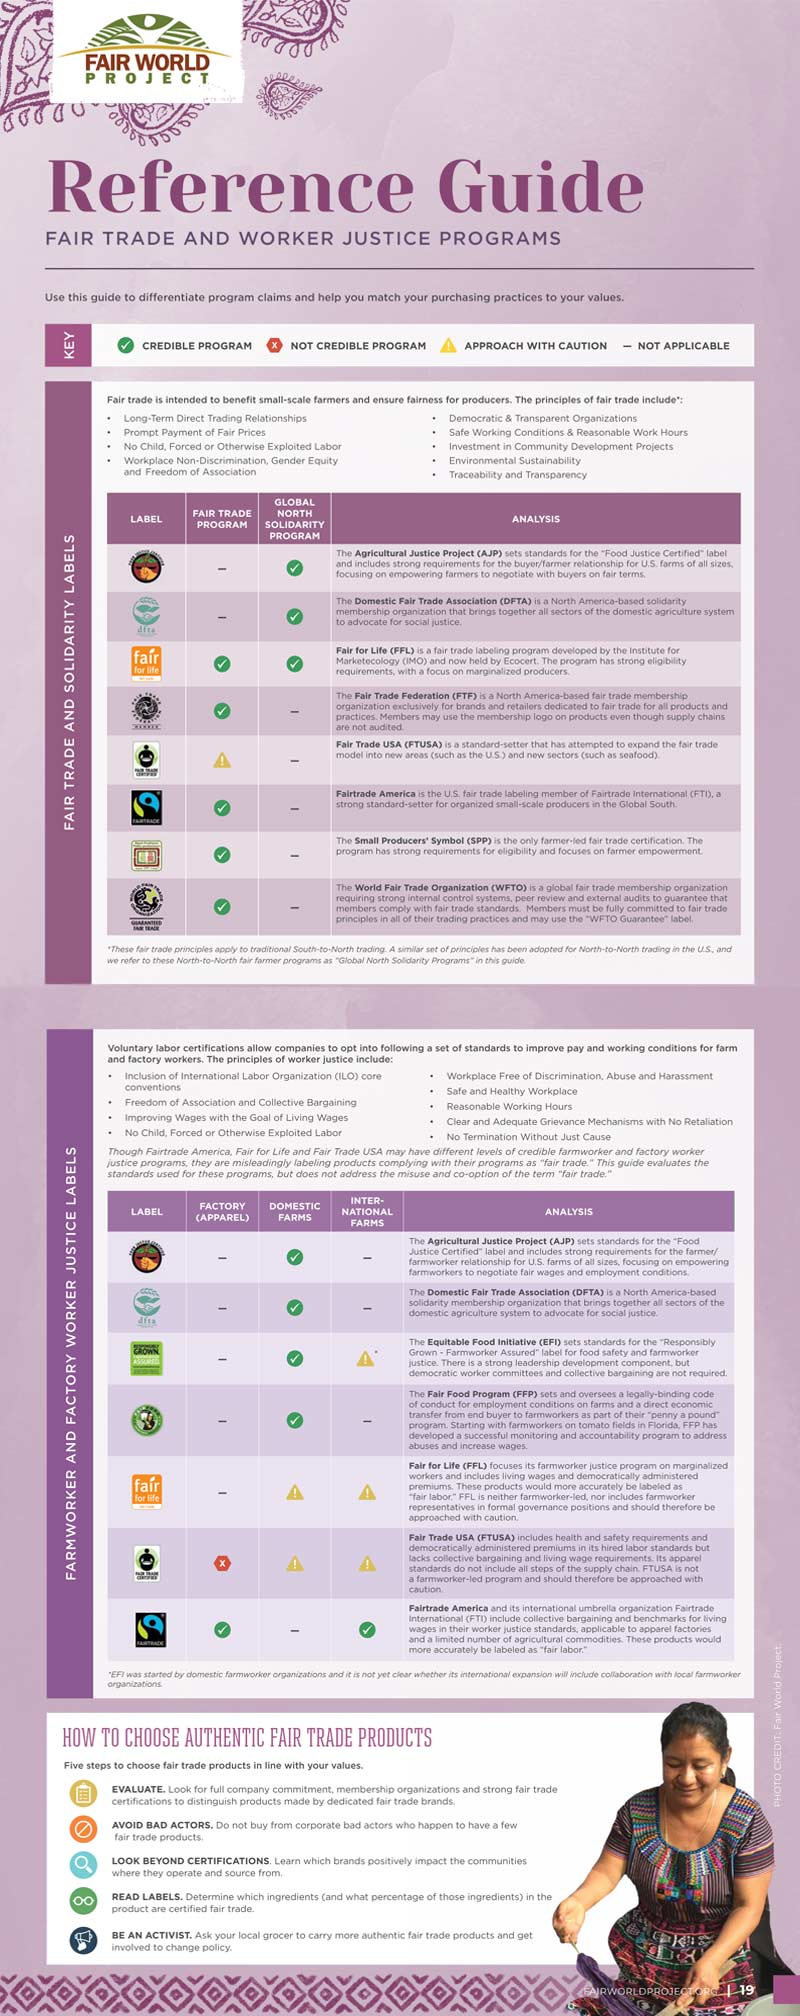 For a Better World Issue 18 Reference Guide